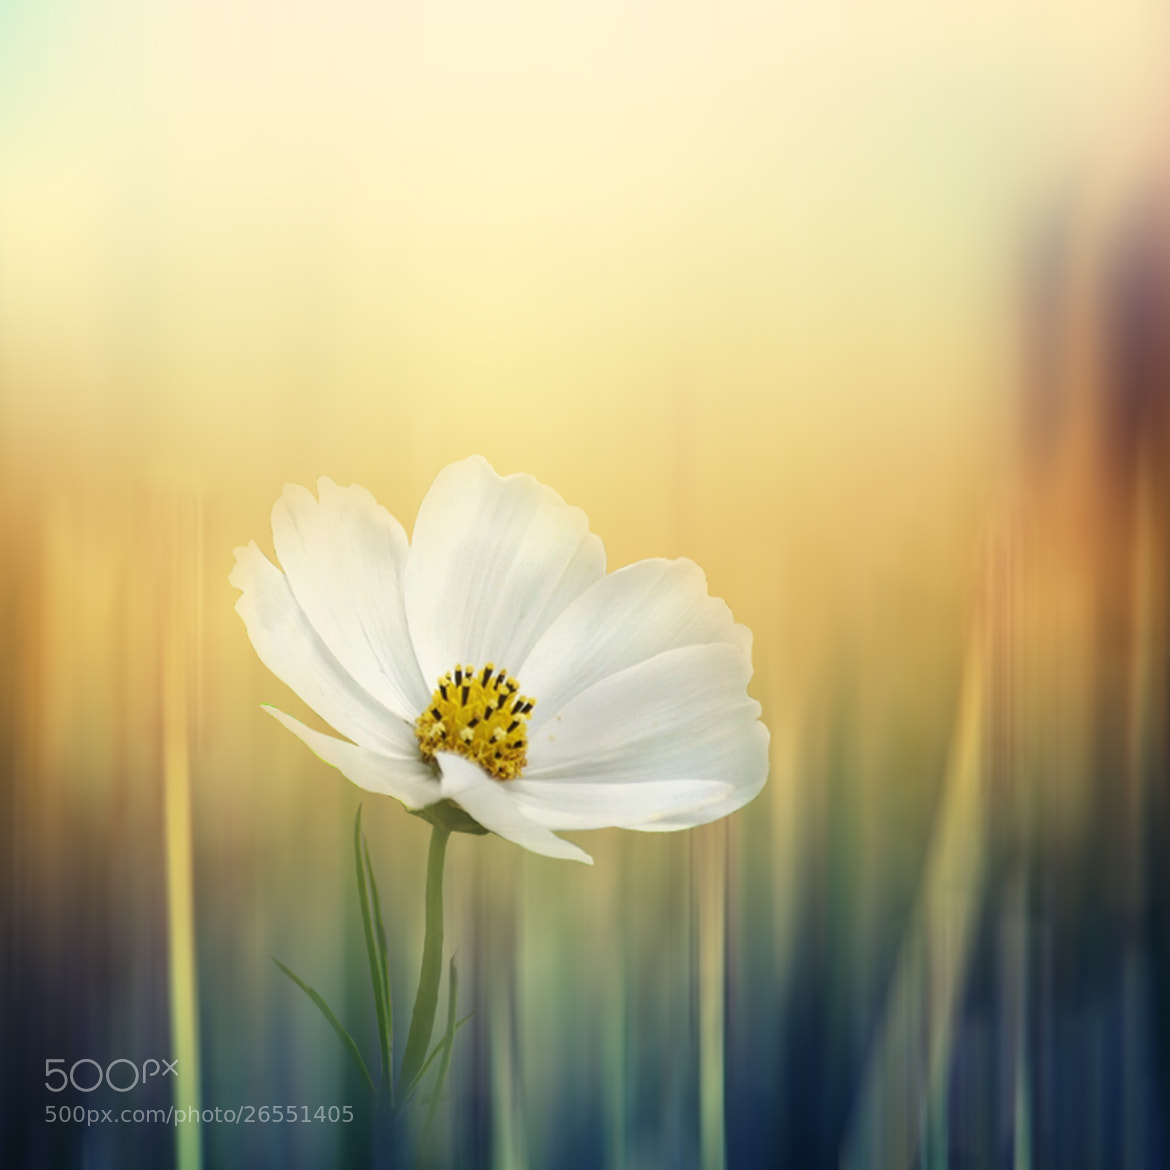 Photograph beauty in blur by Kittiwut Chuamrassamee on 500px